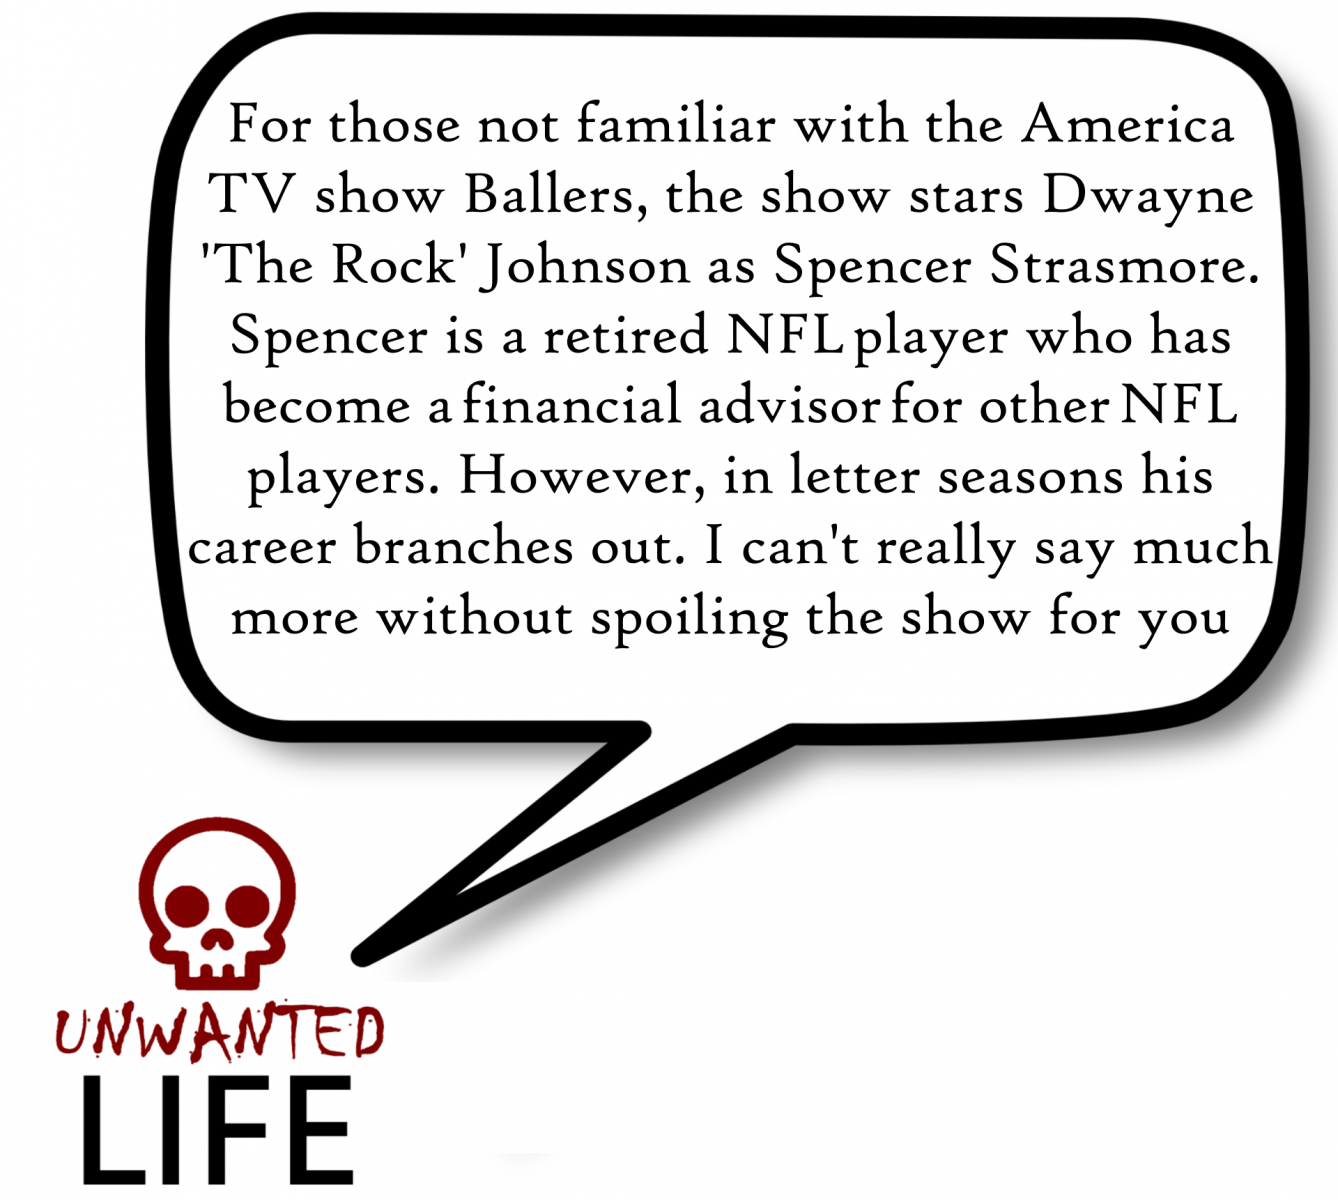 Ballers: The Suicide Storyline 2